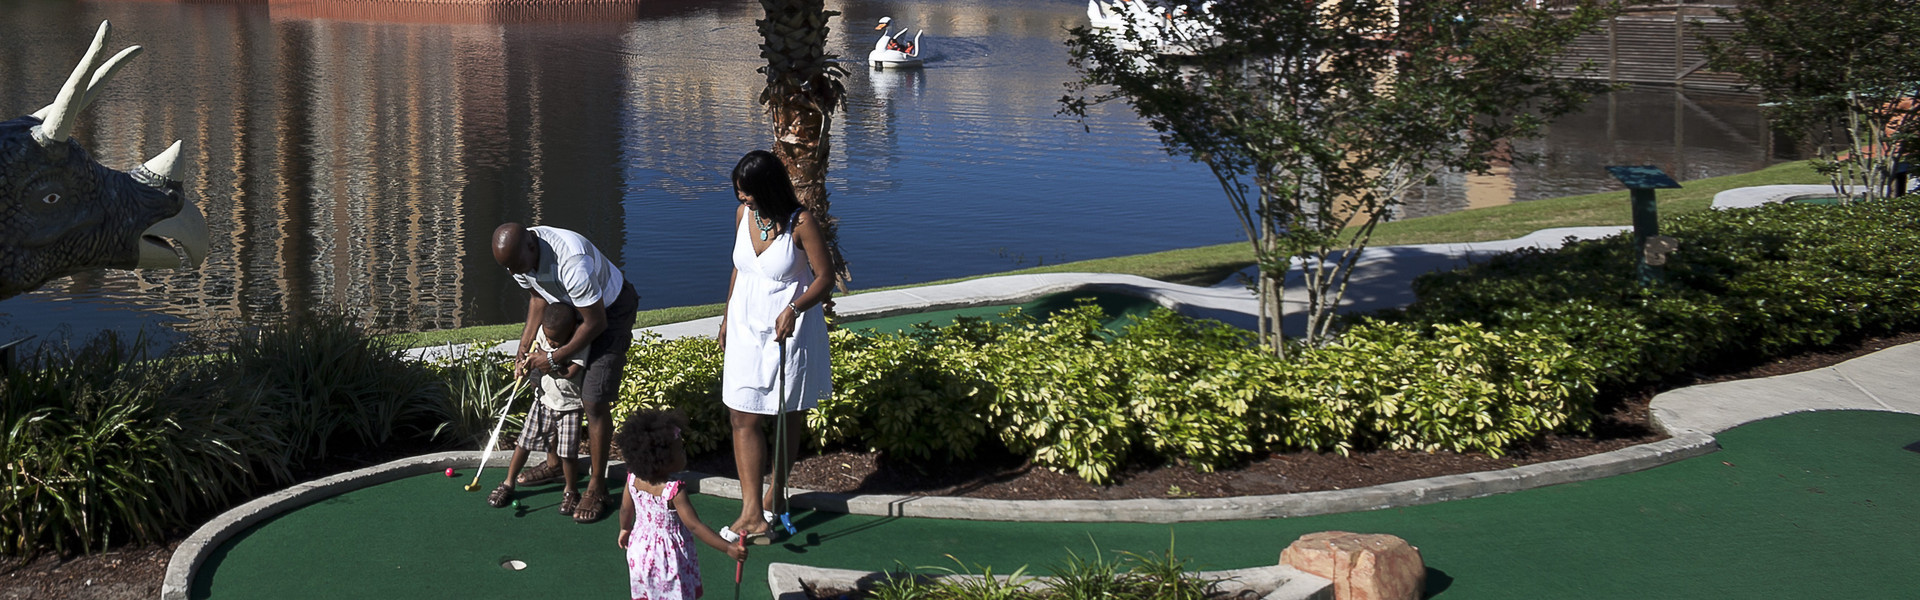 Mini golf in Orlando Florida at our resort | Westgate Lakes Resort & Spa